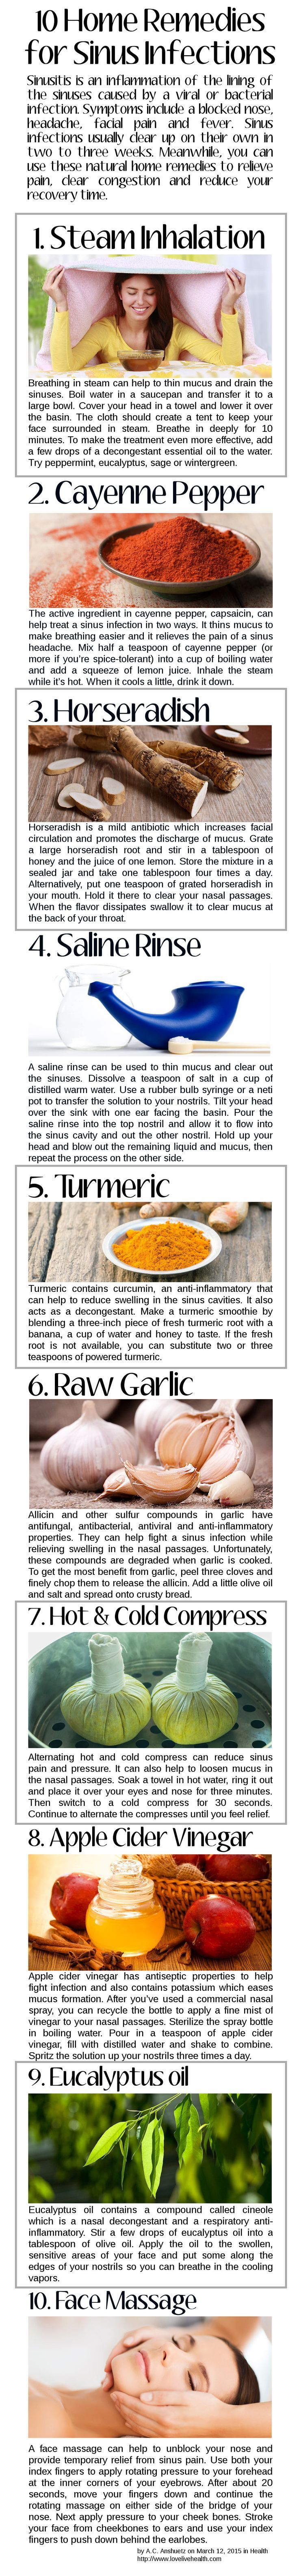 Sinusitis is an inflammation of the lining of the sinuses caused by a viral or bacterial infection. Symptoms include a blocked nose, headache, facial pain and fever. Sinus infections usually clear up on their own in two to three weeks. Meanwhile, you can use these natural home remedies to relieve pain, clear congestion and reduce your recovery time…